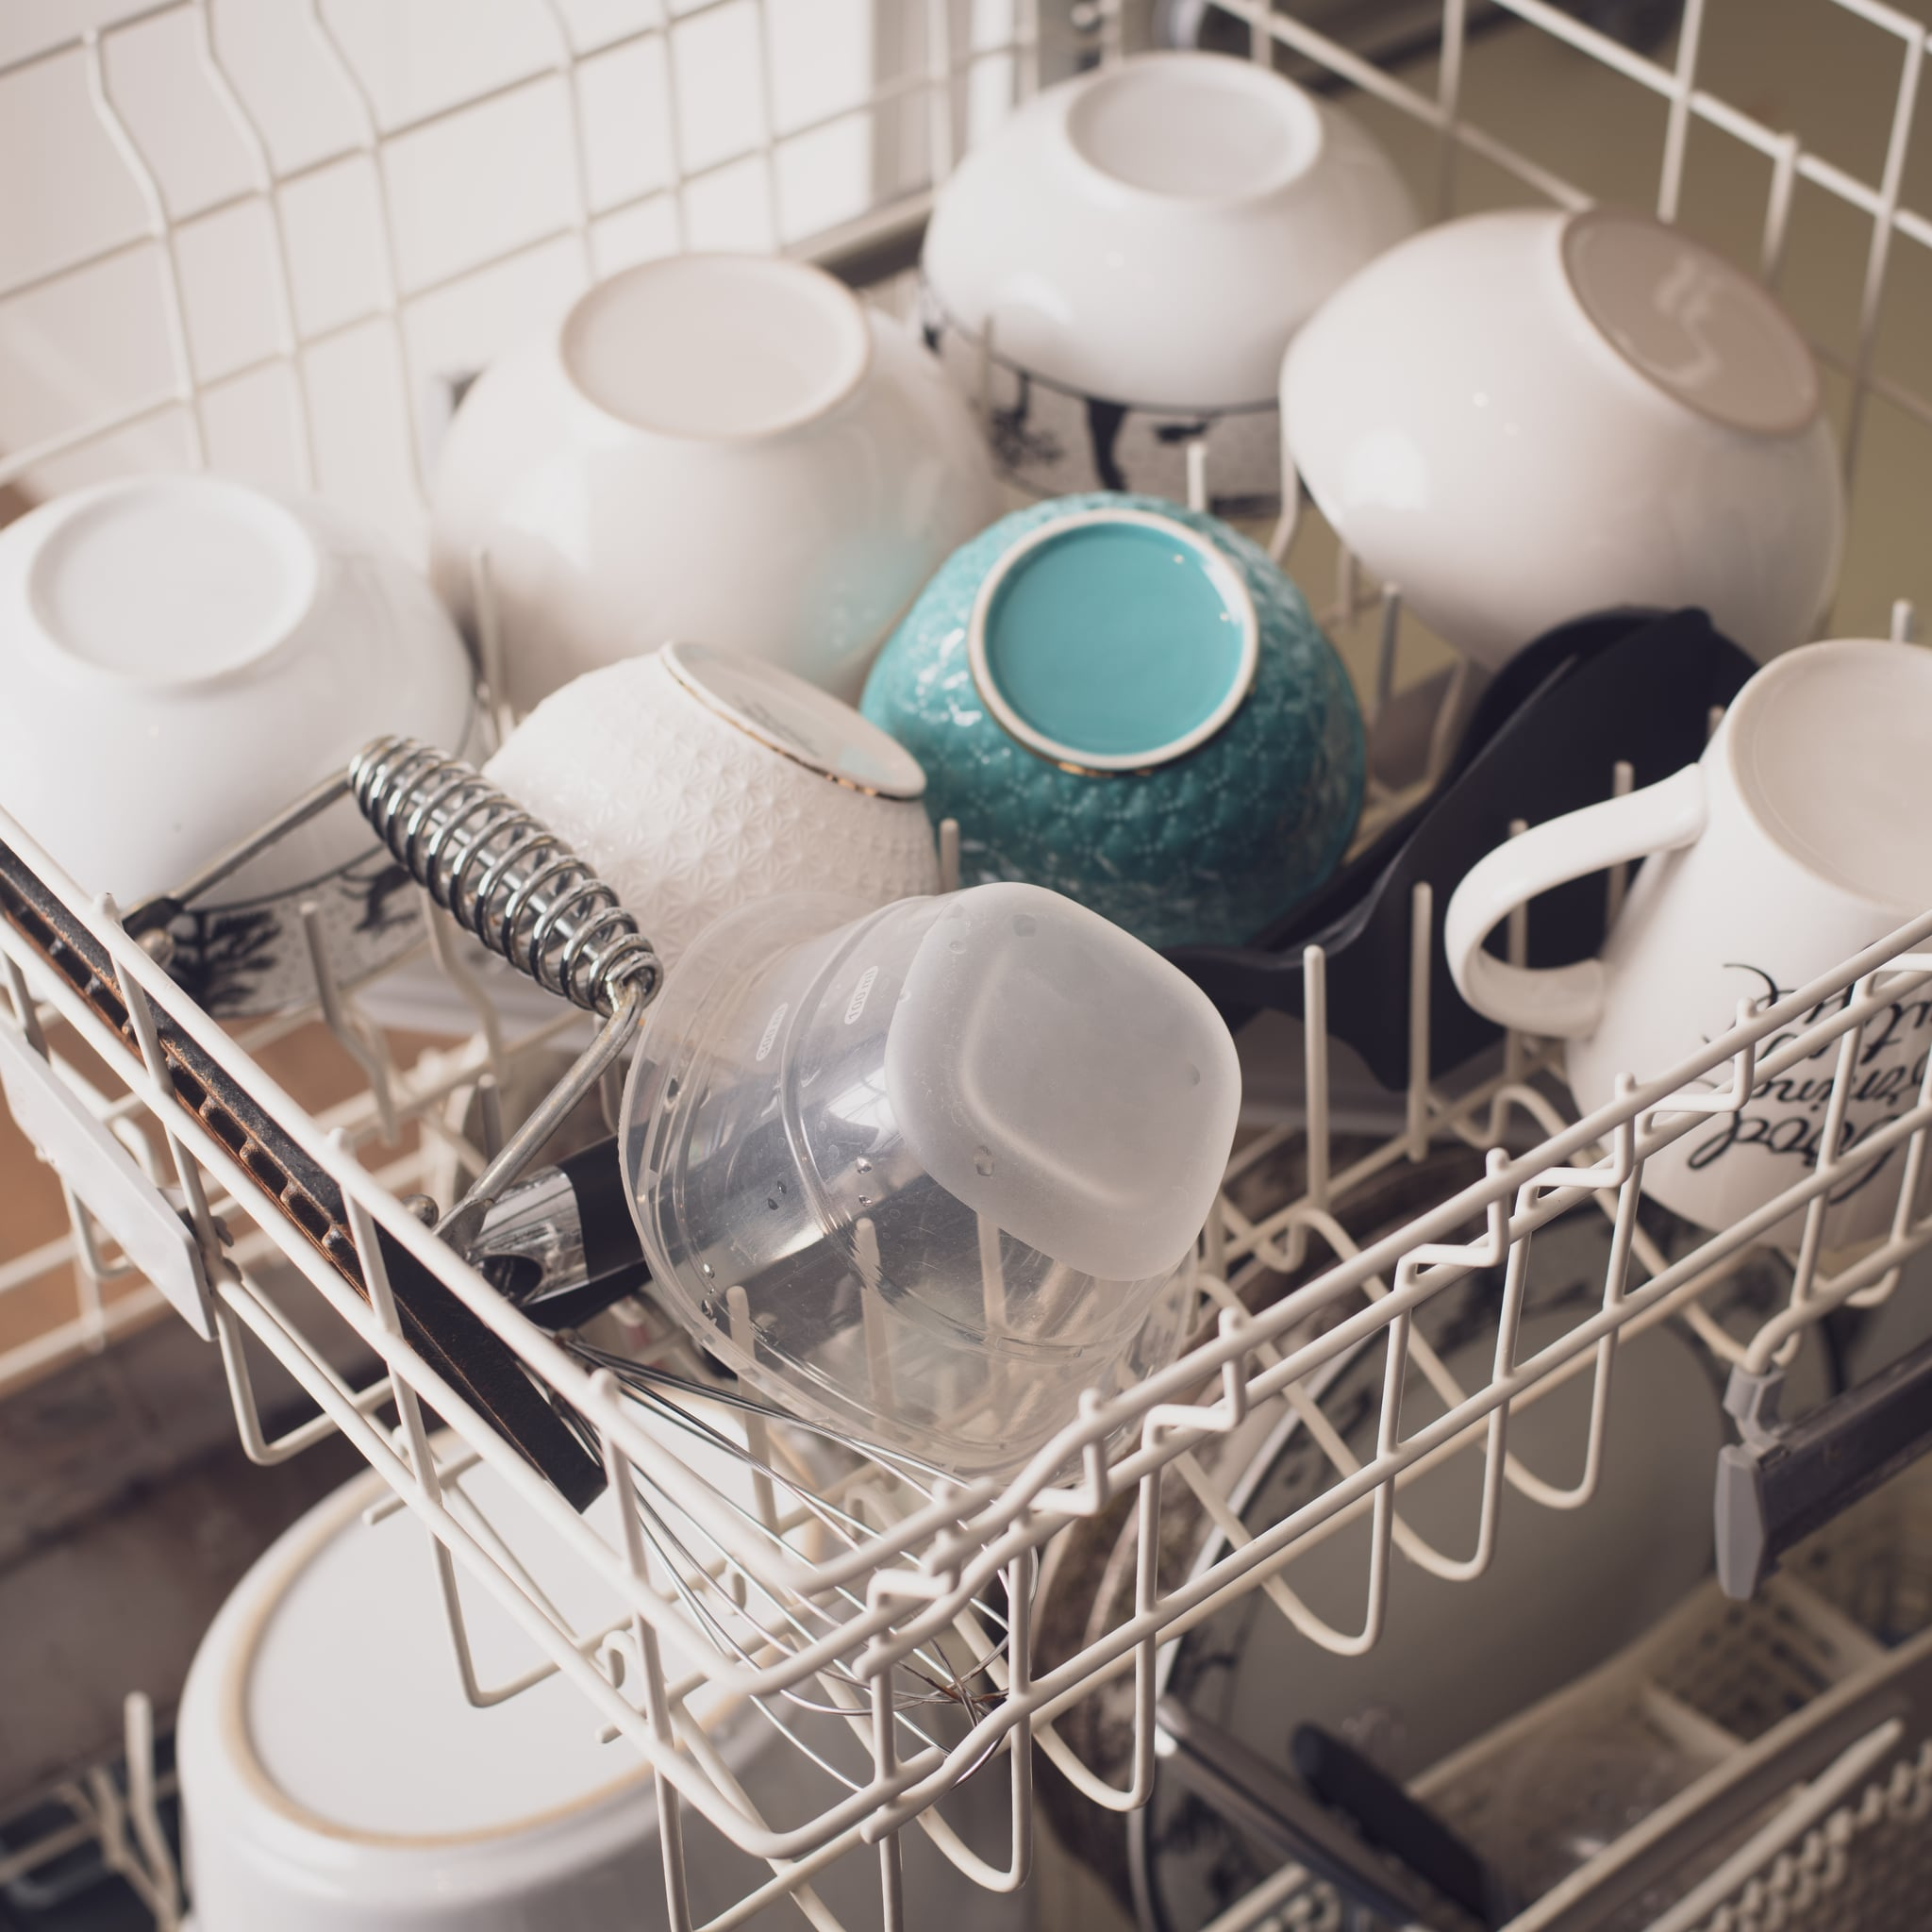 The Best Cleaning Schedule Templates For Roommates   POPSUGAR Home